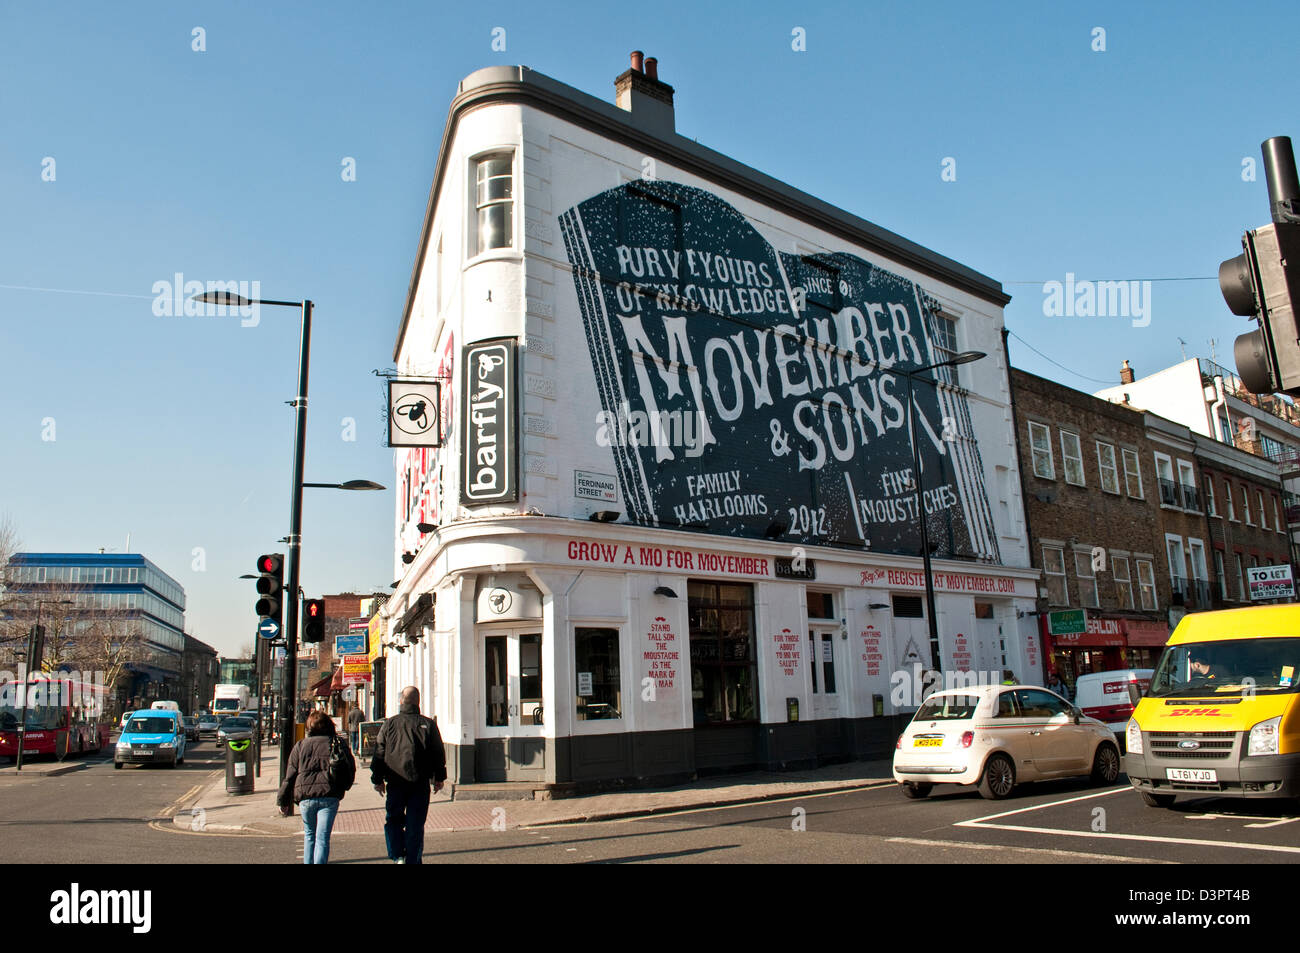 Big wall advertisement for Movember & Sons, Chalk Farm, London, UK - Stock Image